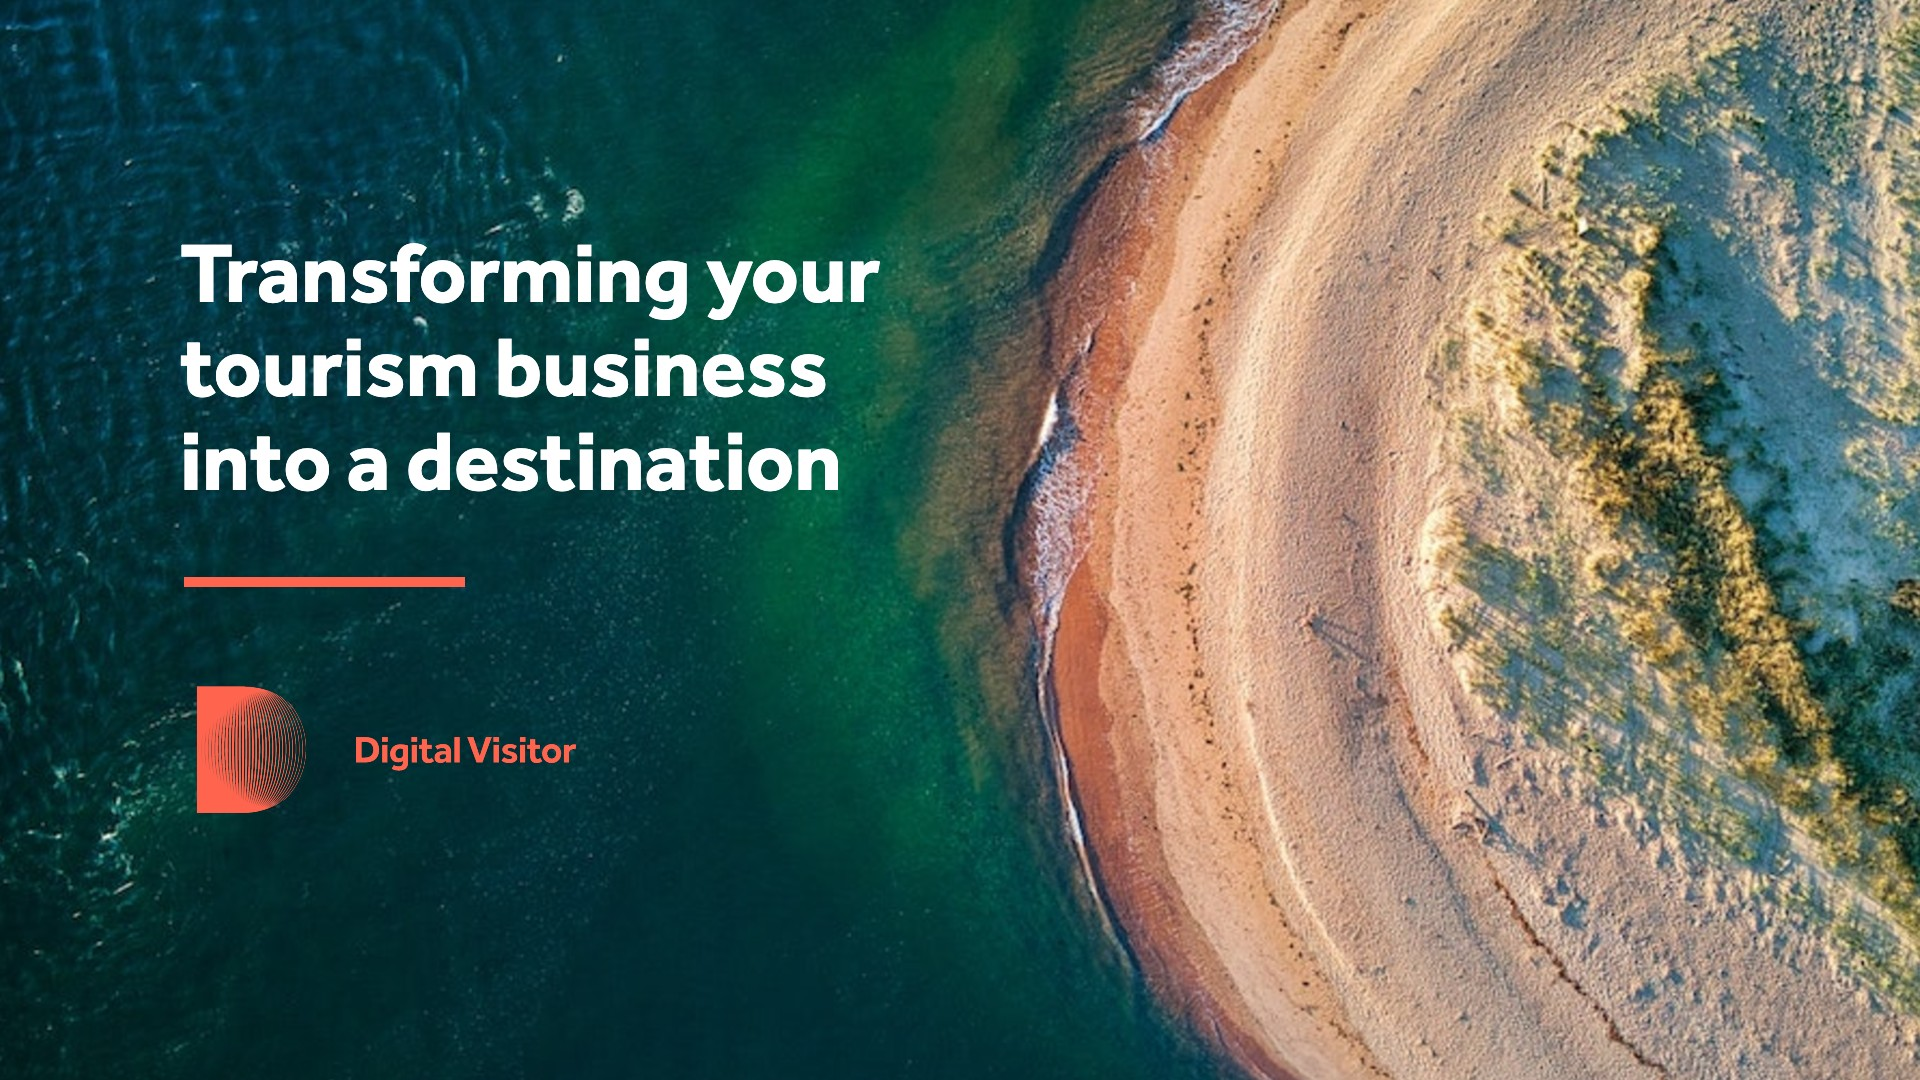 Travel Business To Destinations